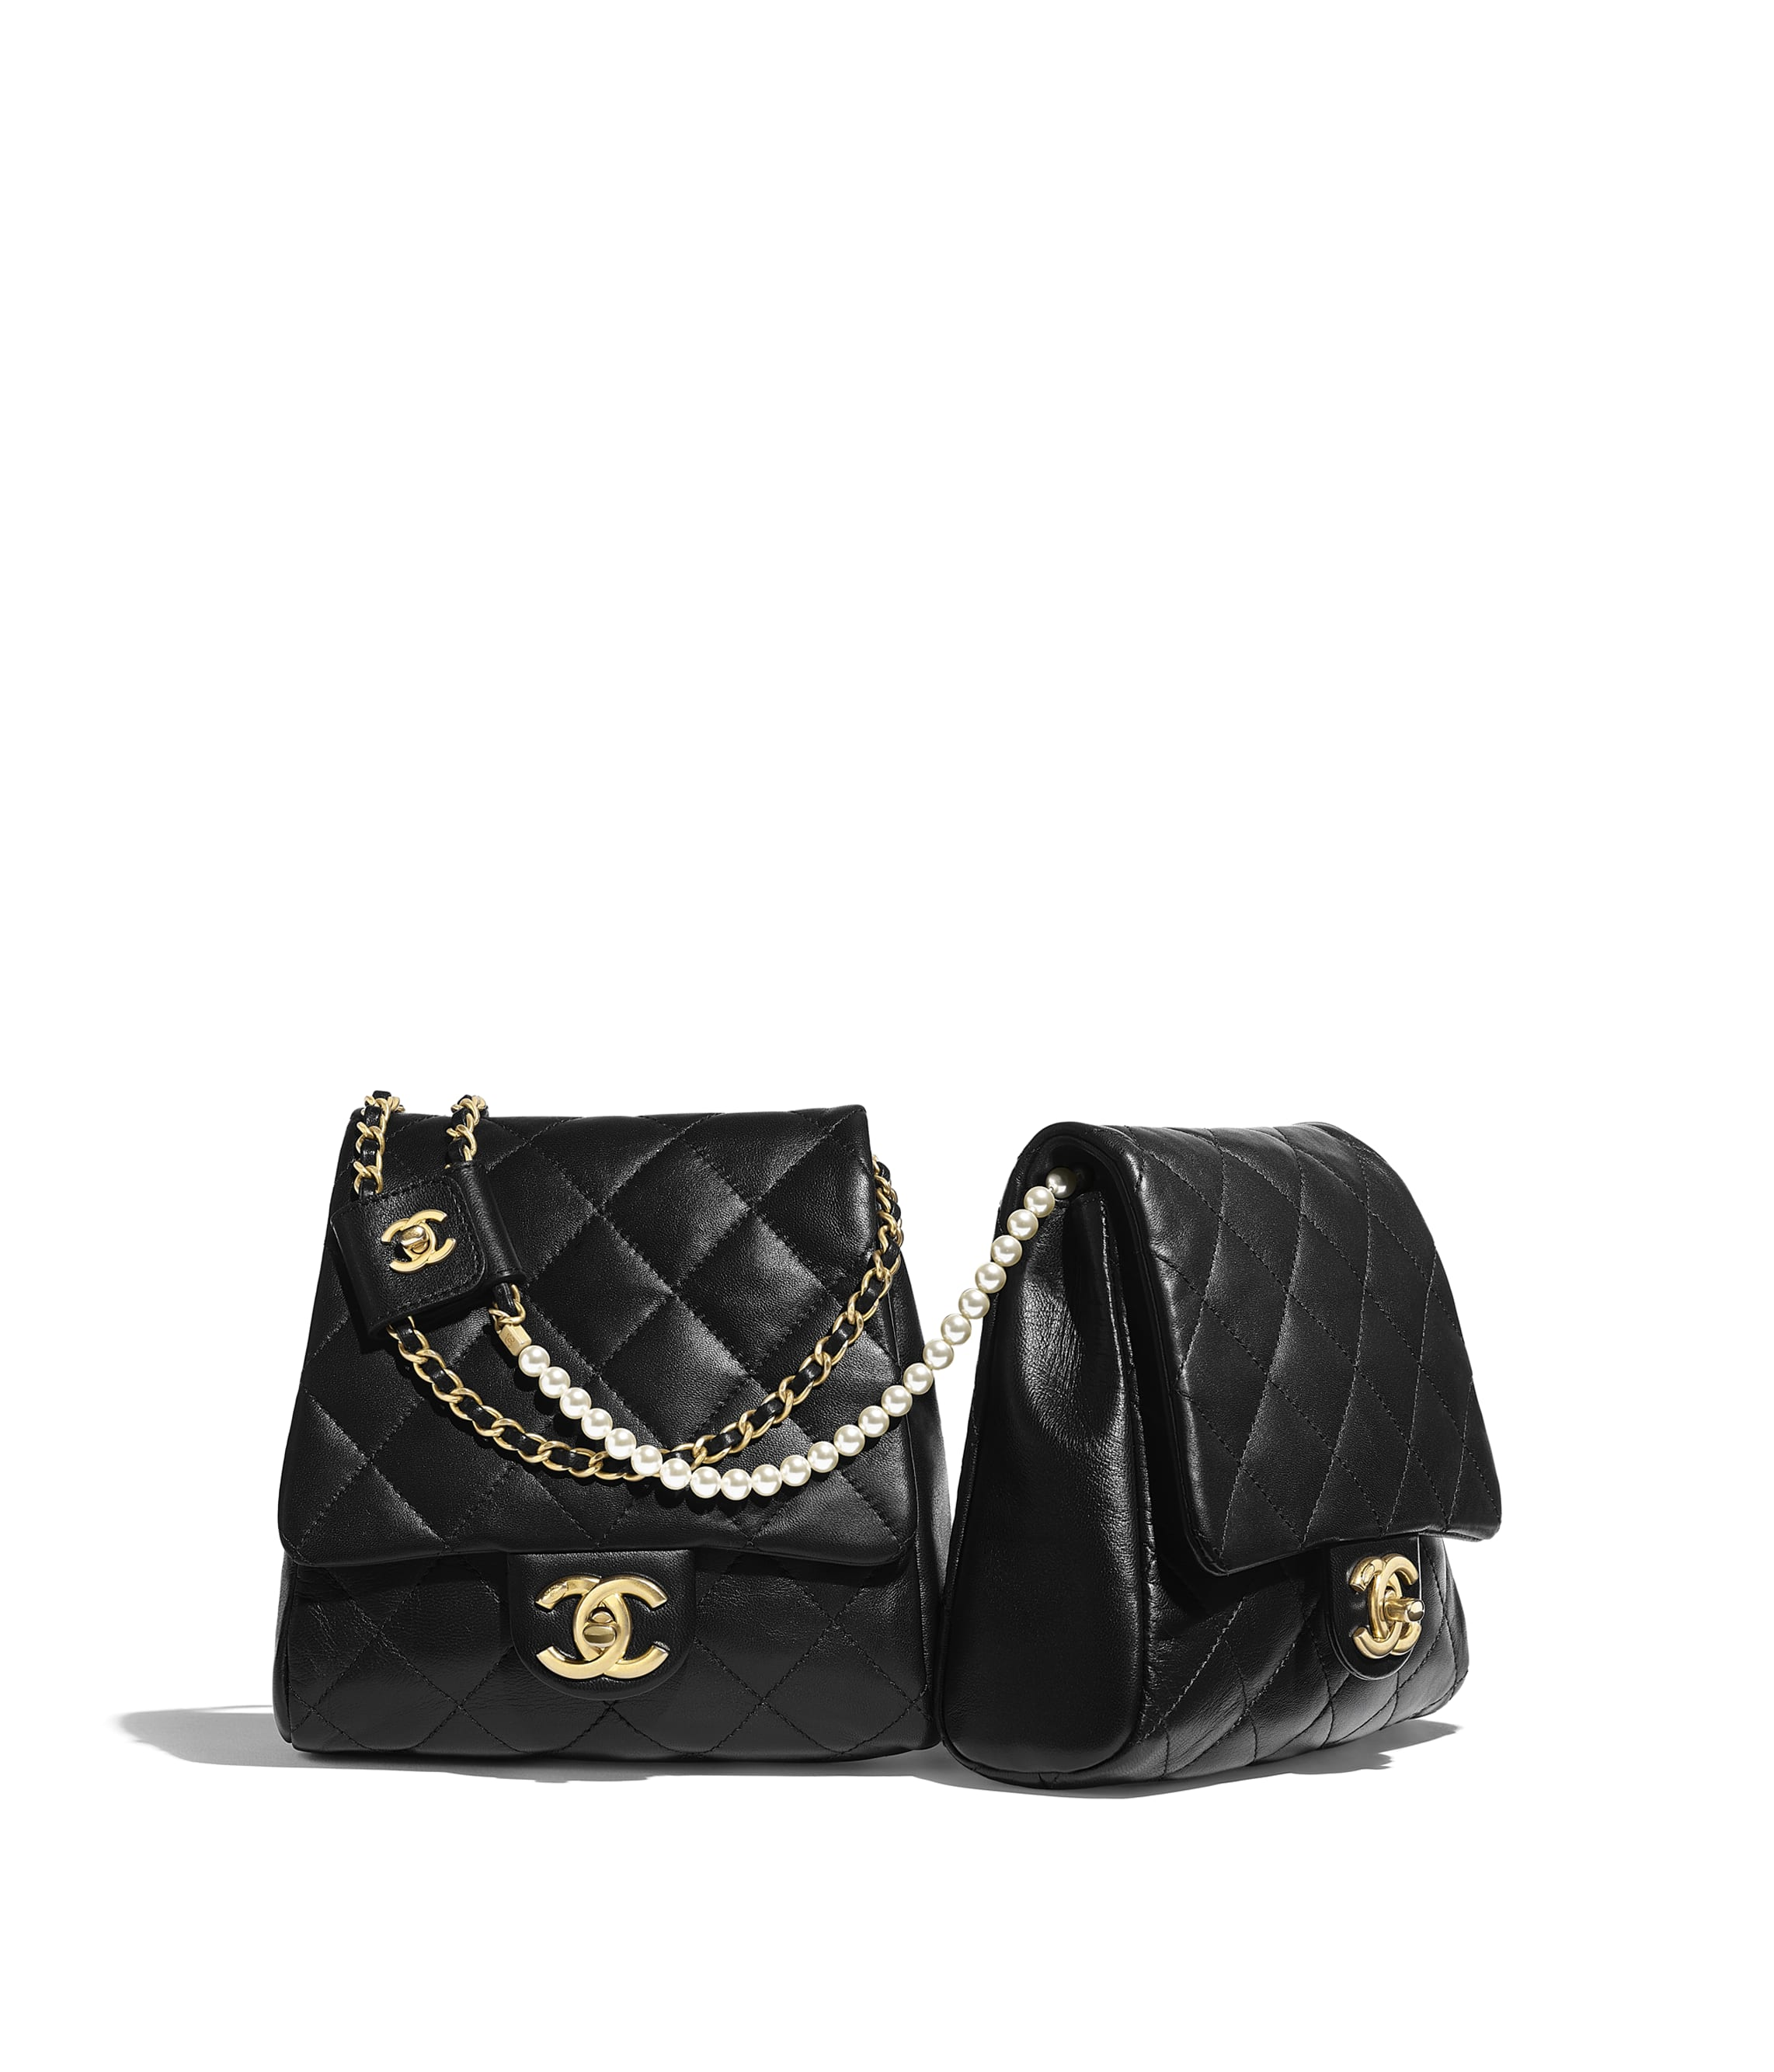 5824b3256df5 Handbags - CHANEL